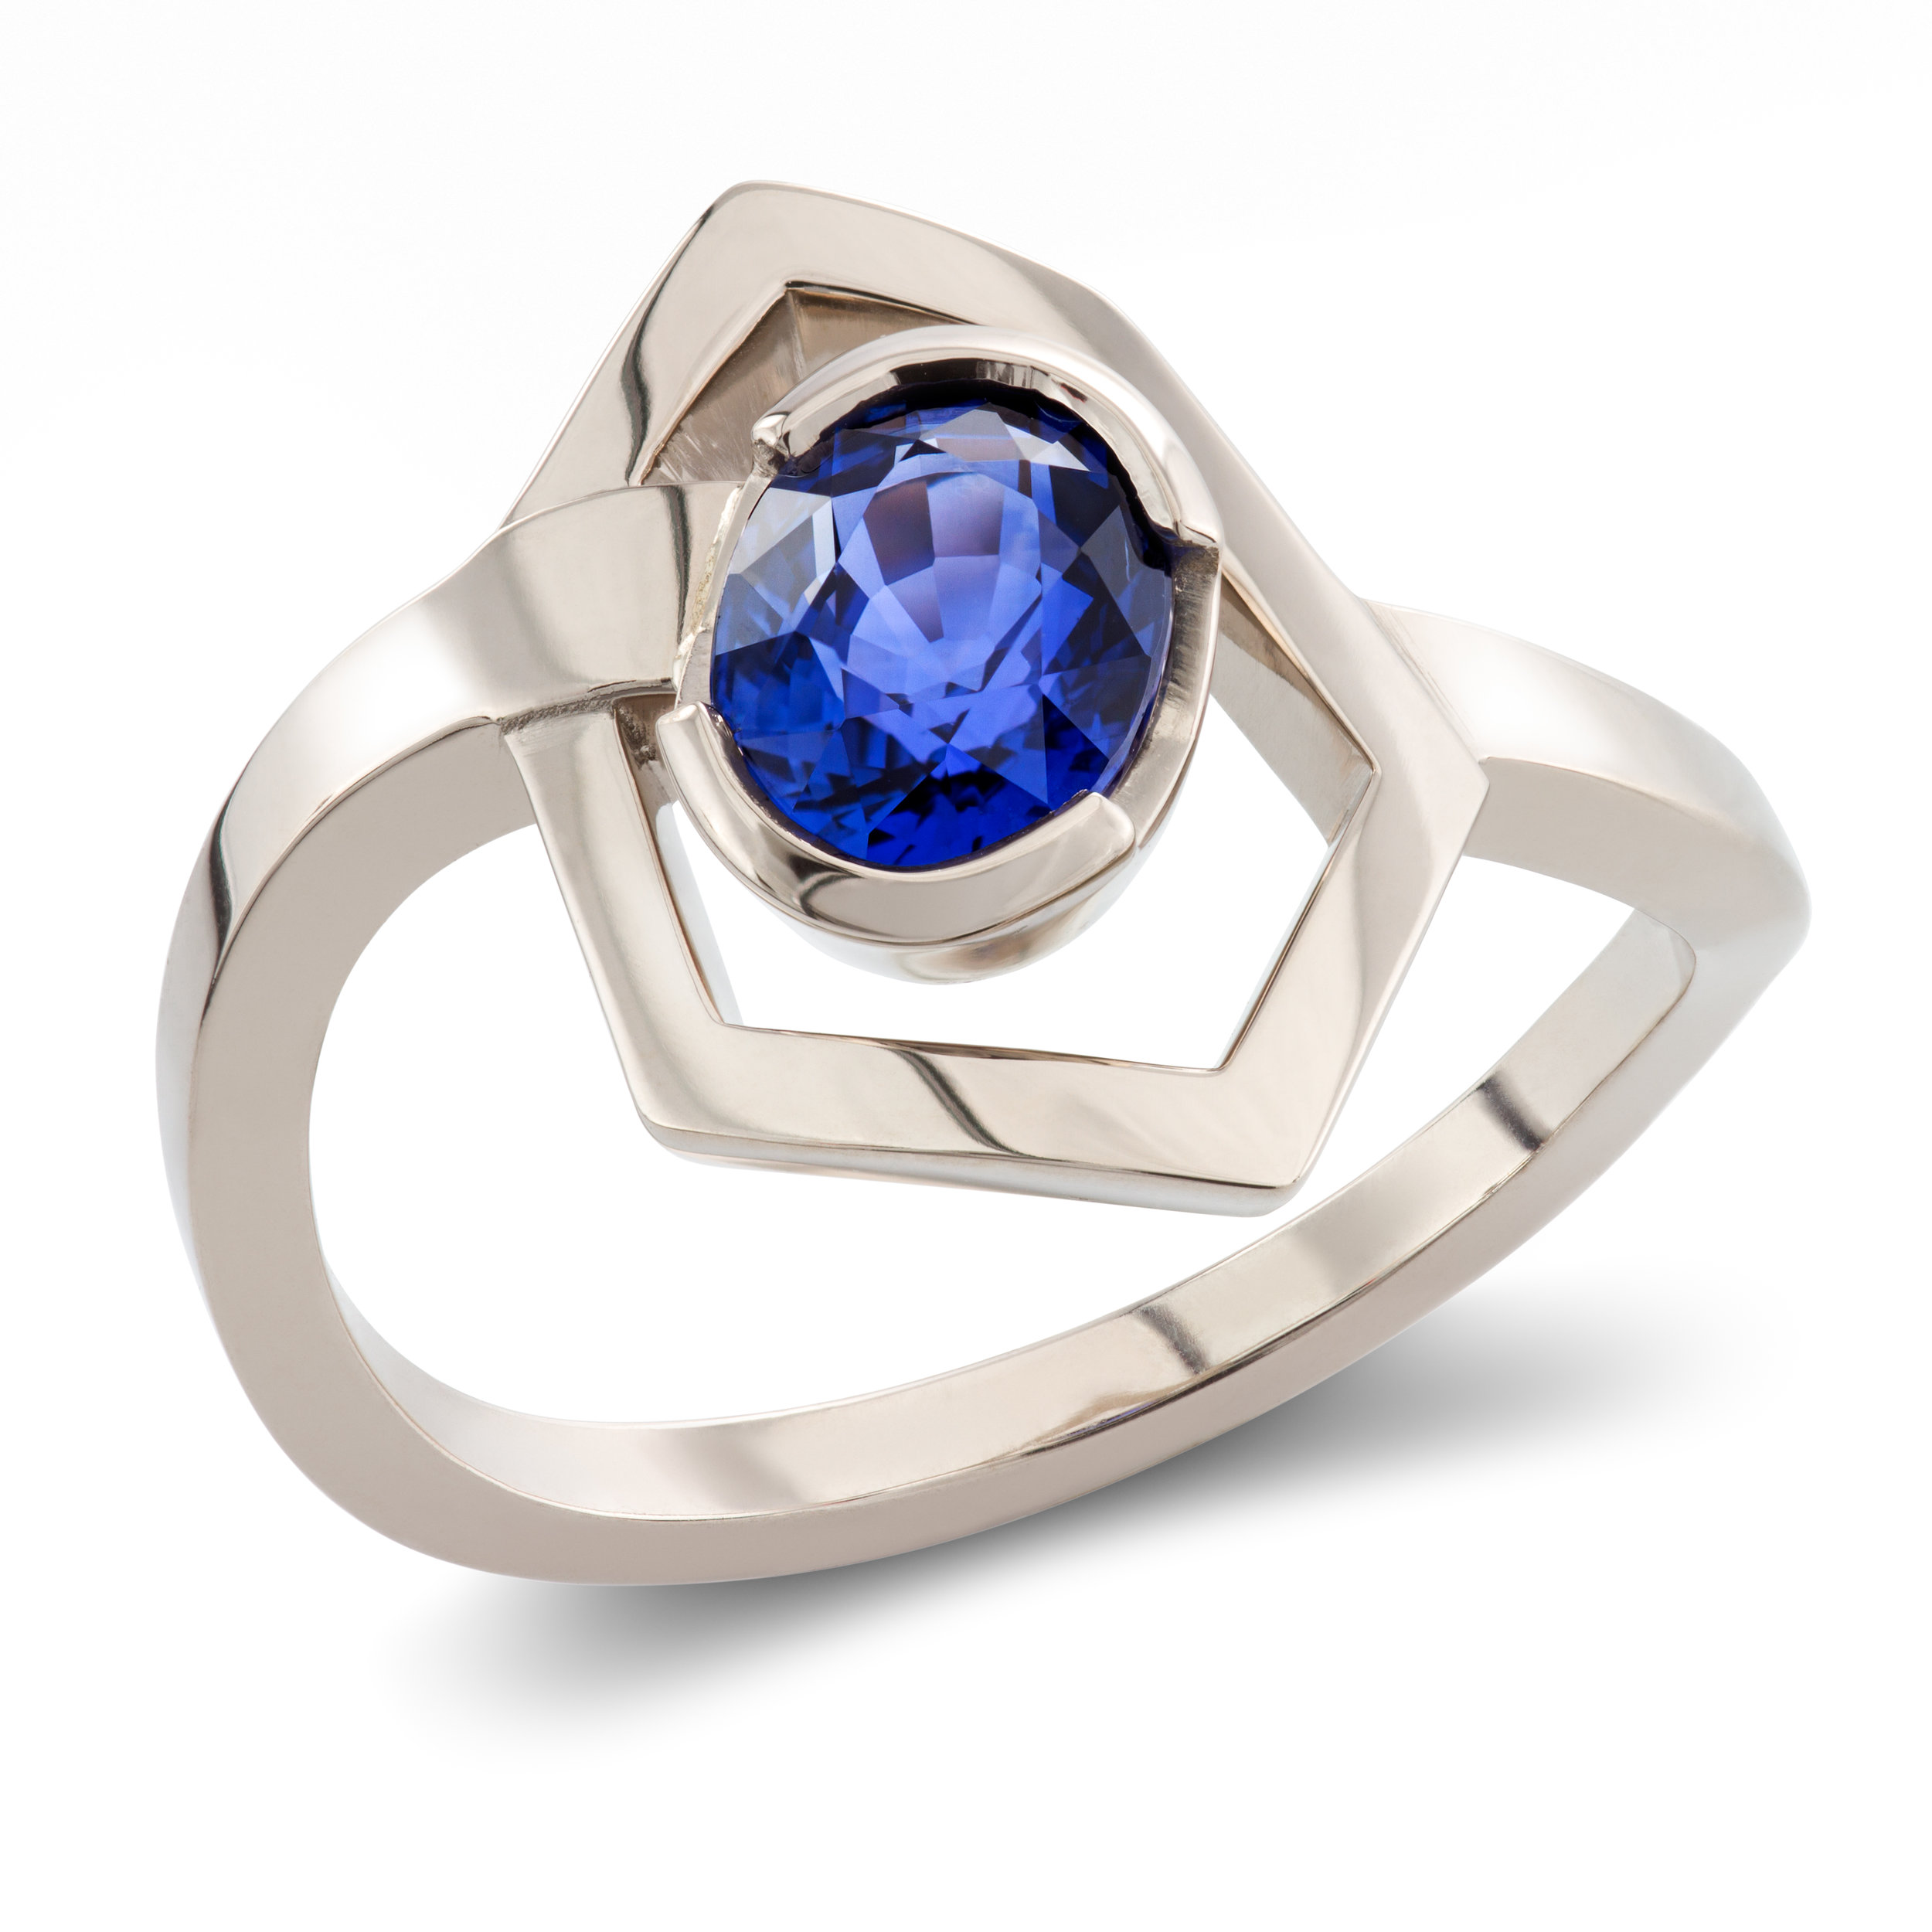 Bespoke 18ct white gold and sapphire dress ring commission